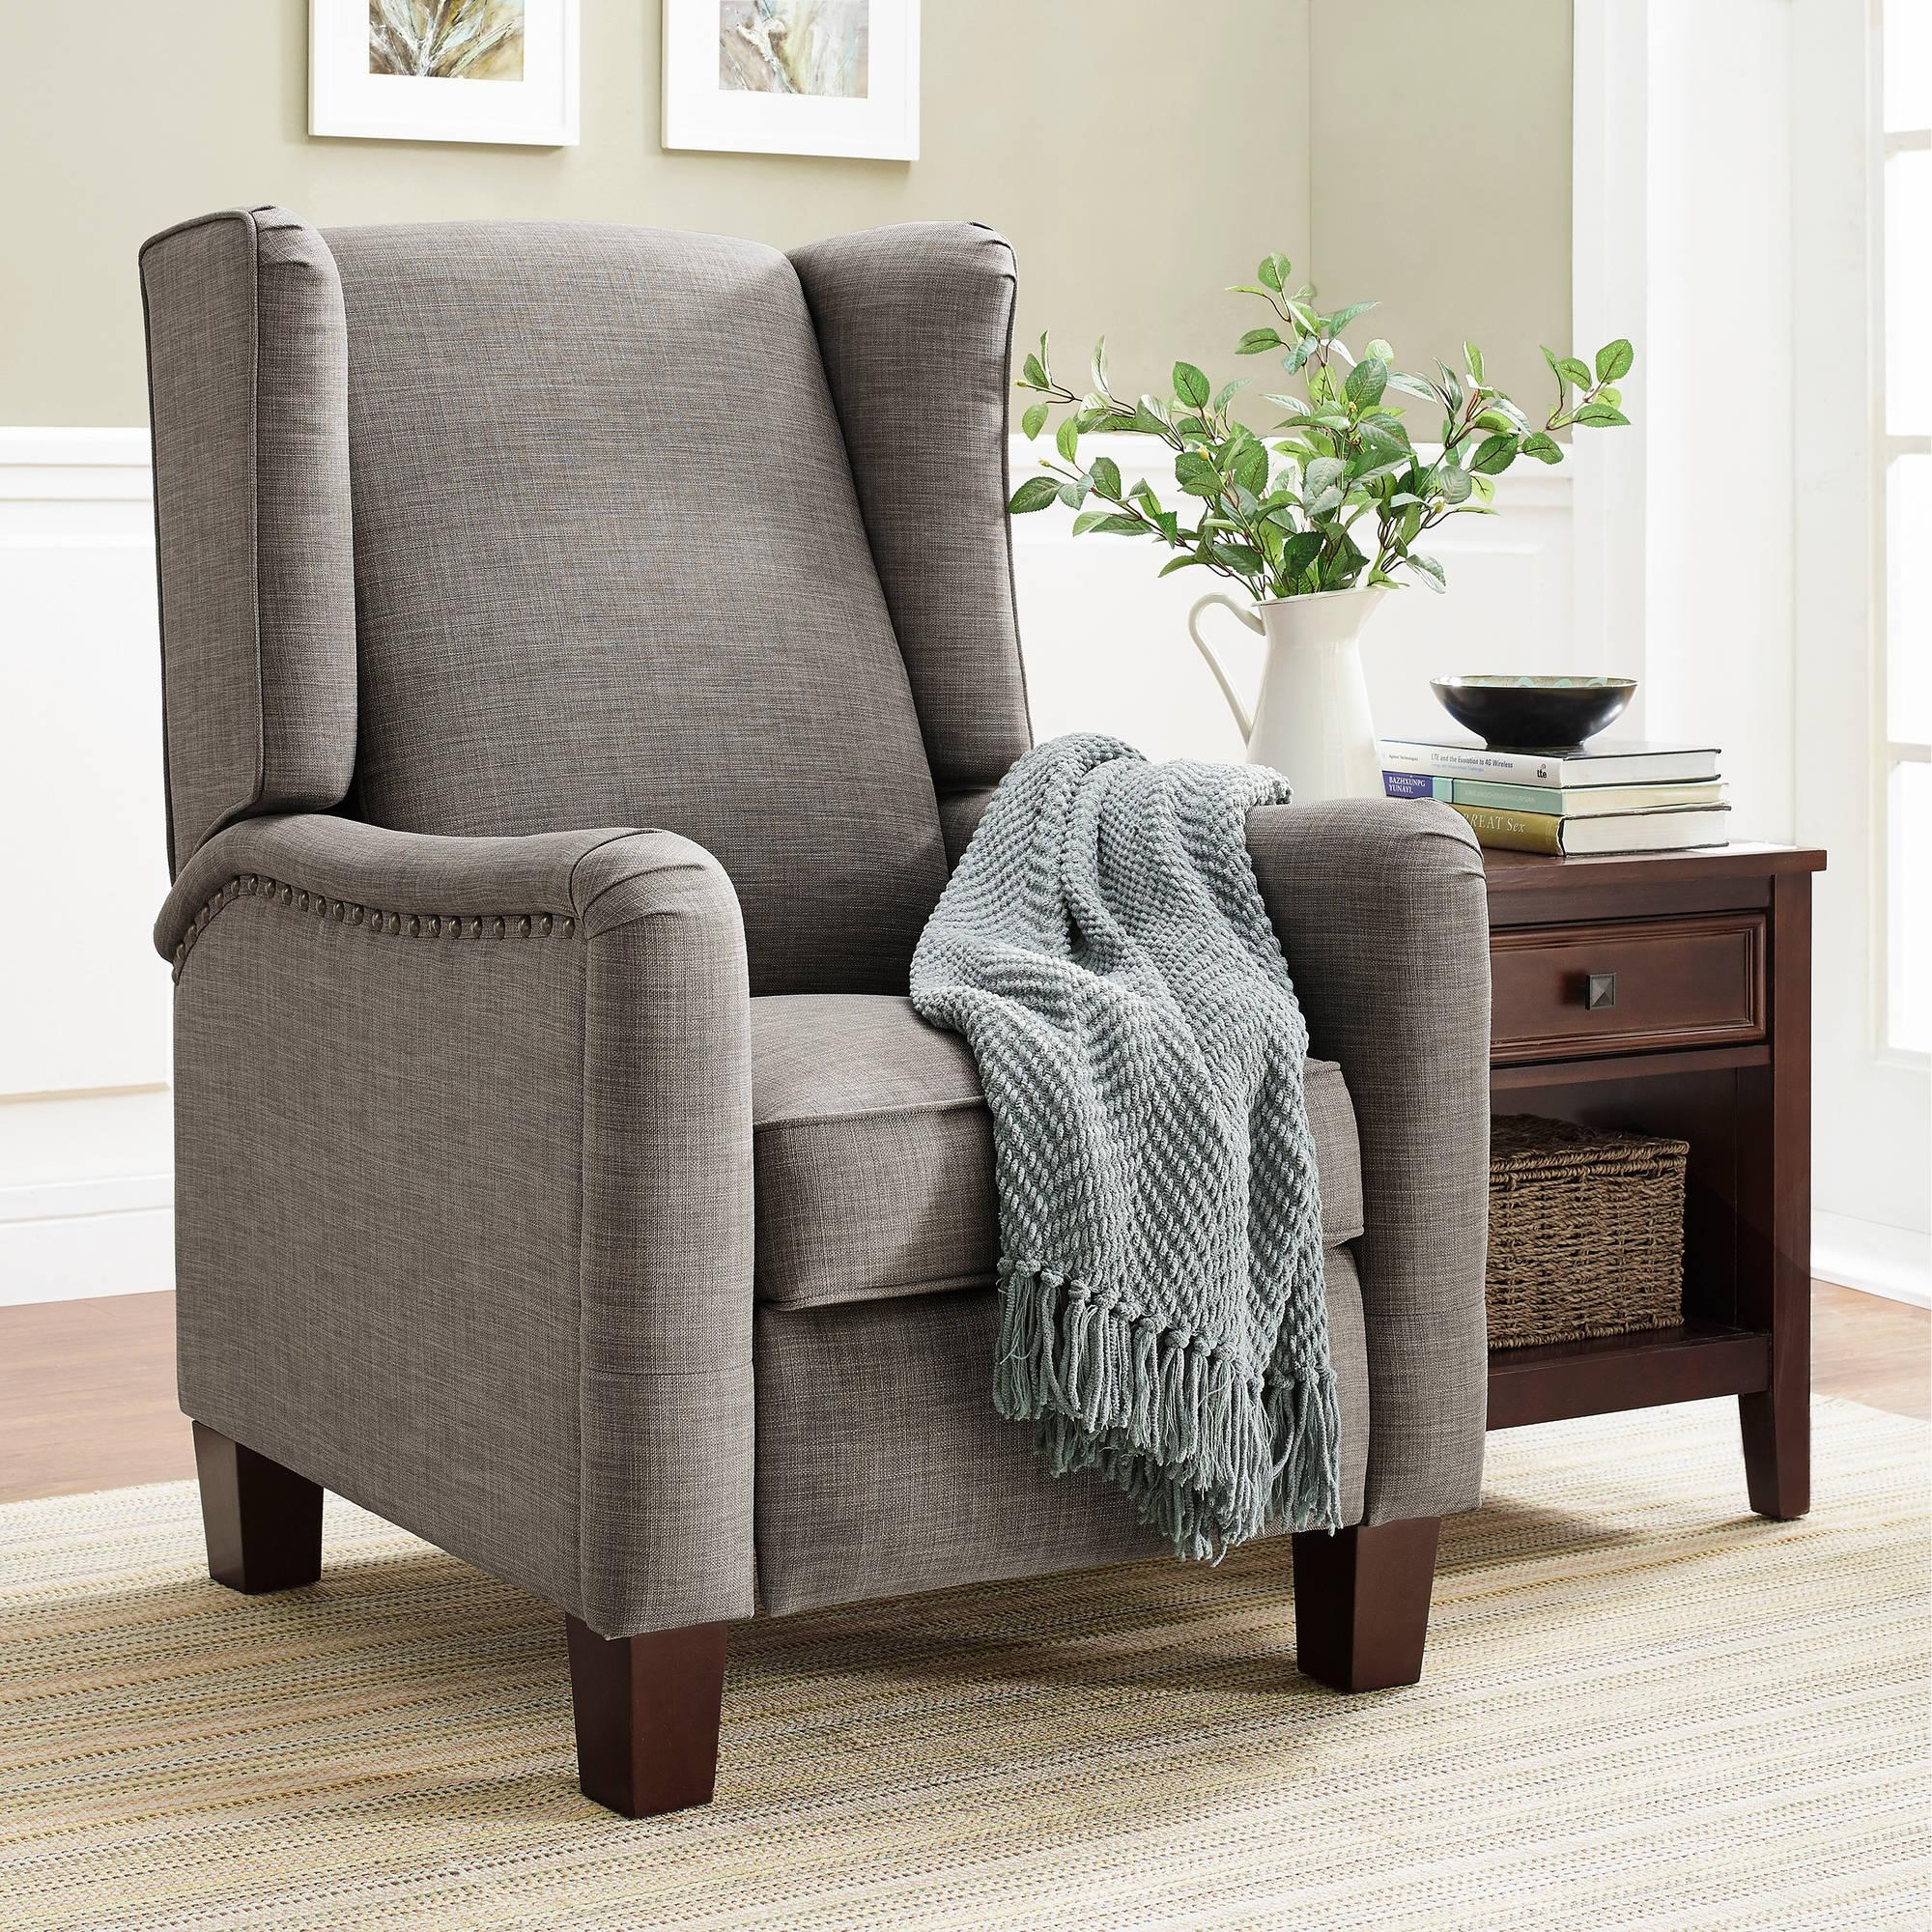 Living Room Furniture With Regard To Round Sofa Chair Living Room Furniture (Image 6 of 20)